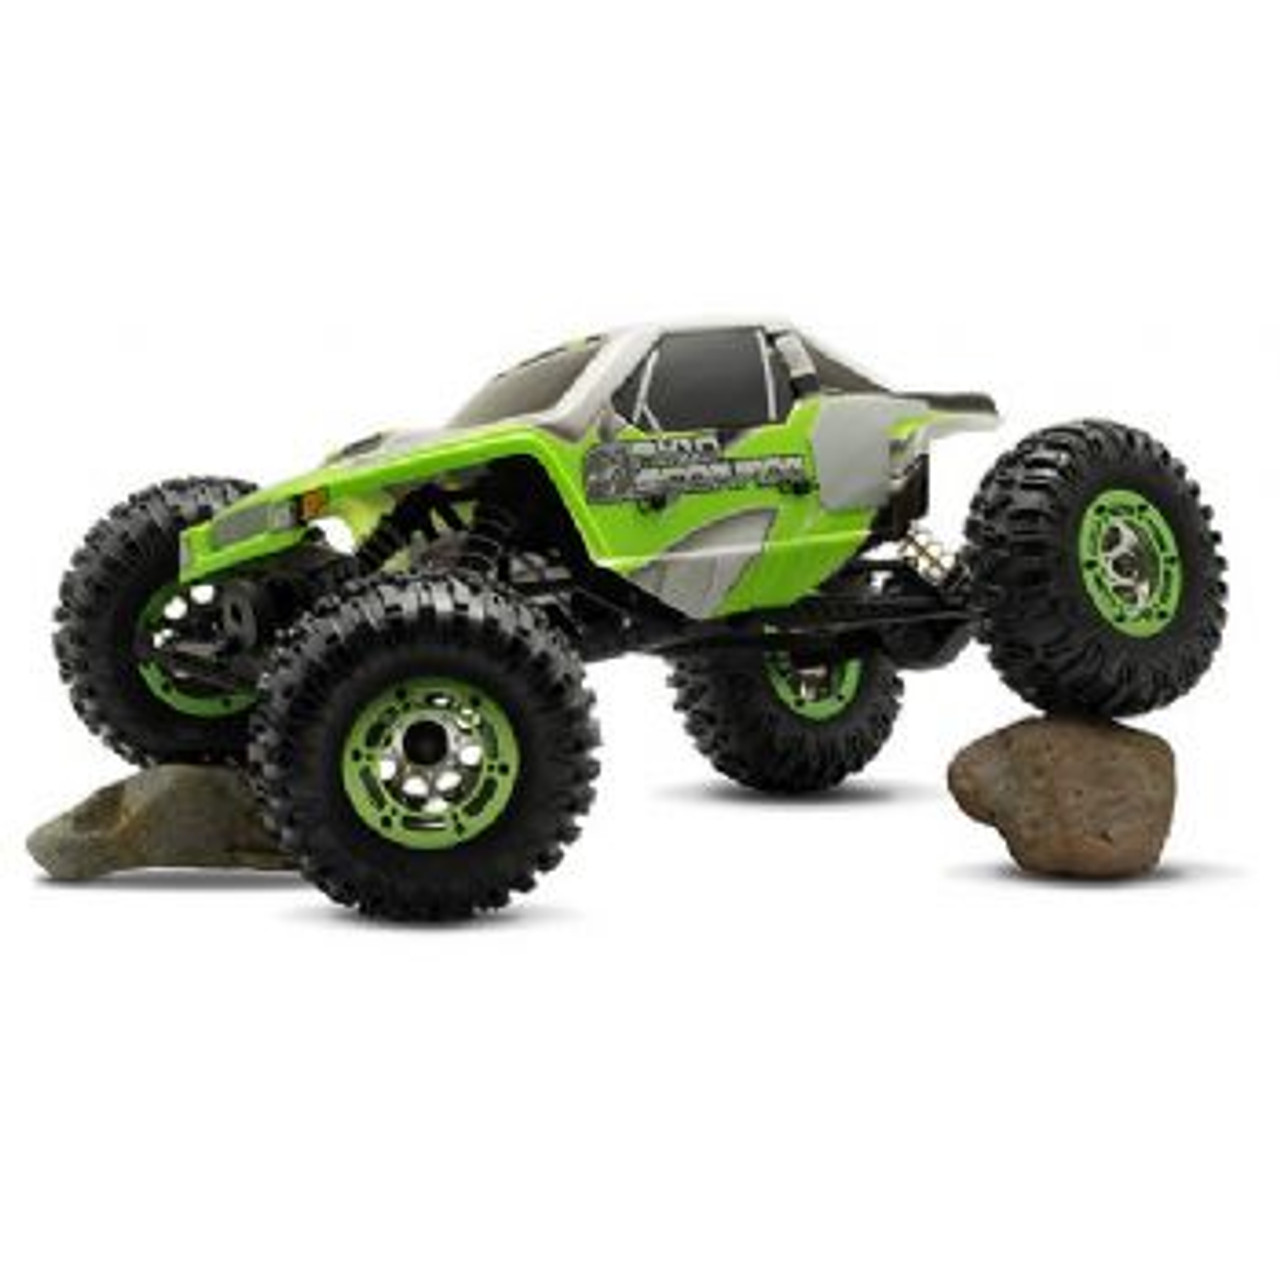 Axial SCX-10 full bearing kits.